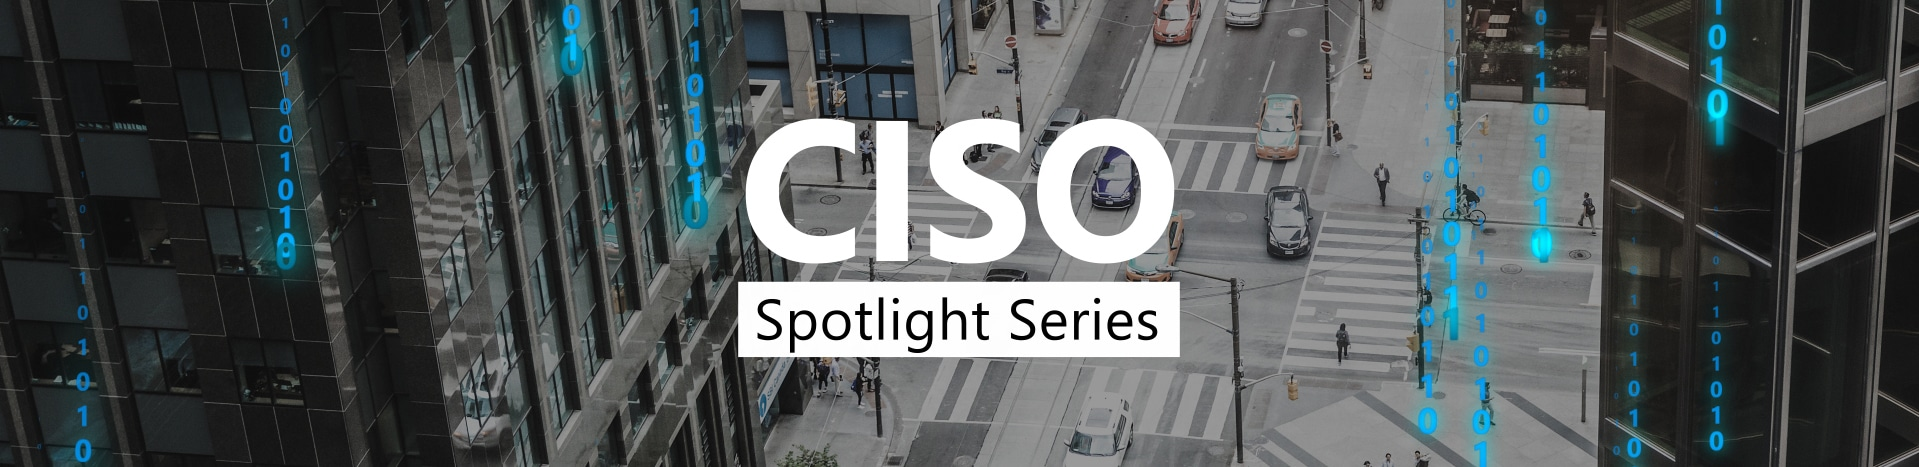 CISO Spotlight Series title frame